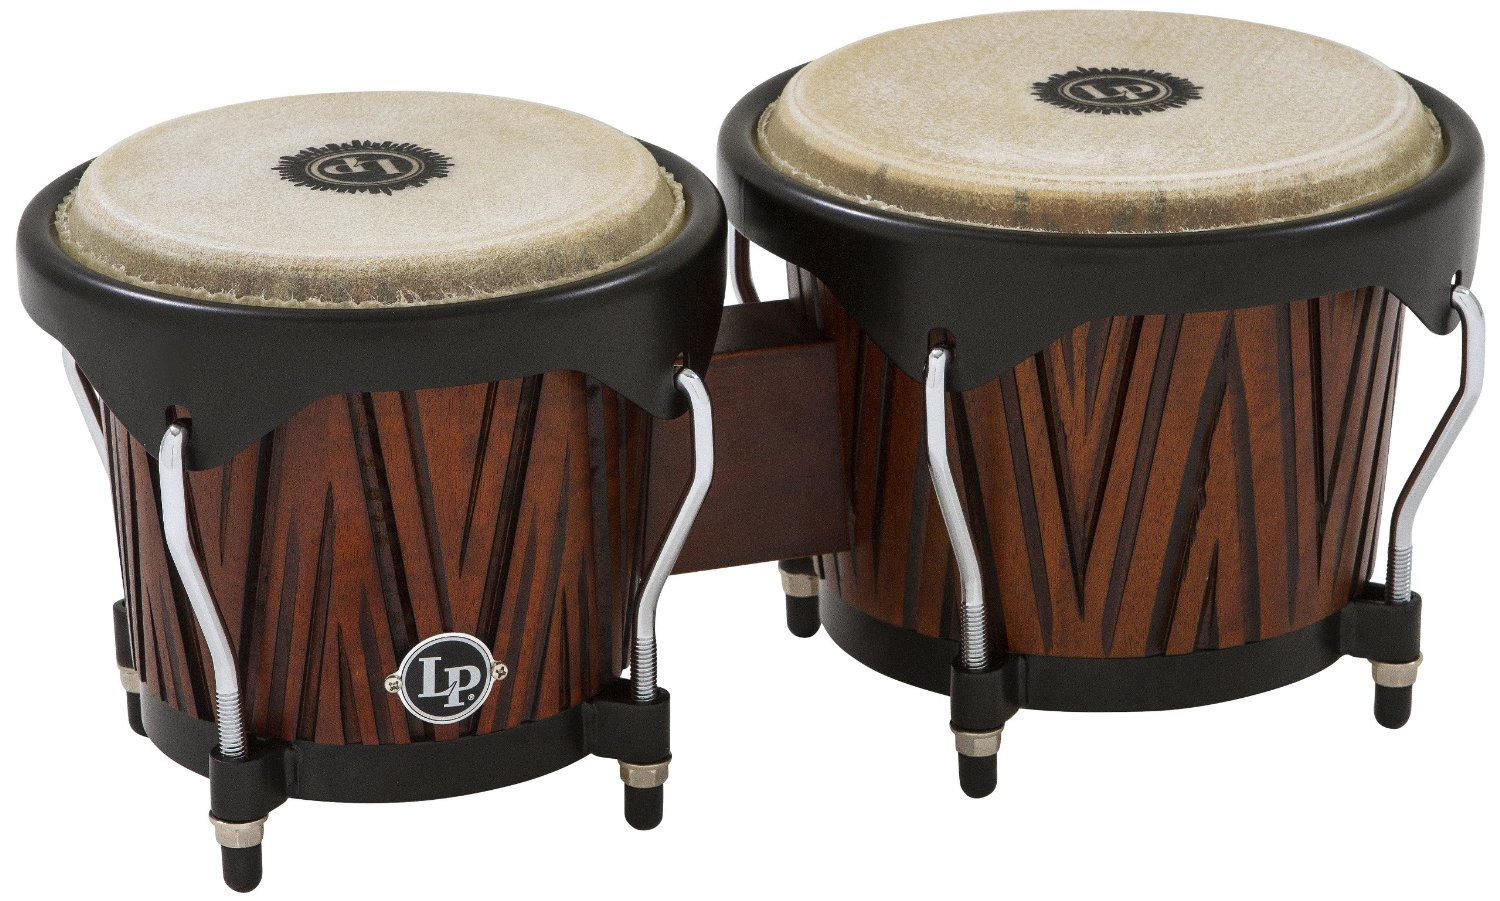 Latin Percussion City Bongos Carved Mango Mahogany Wood by LP